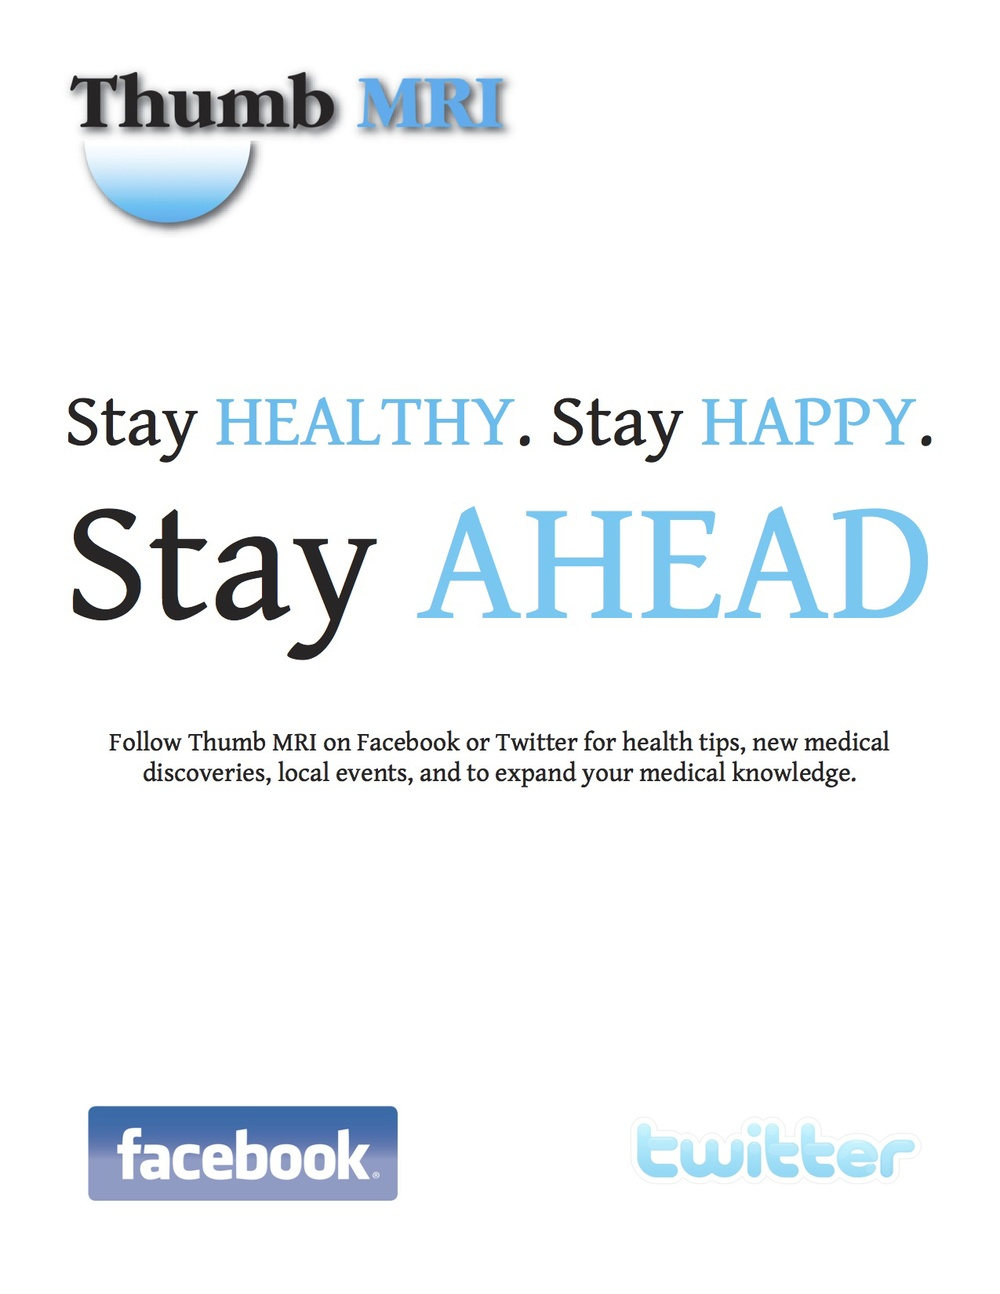 stay ahead social ad with logo.jpg